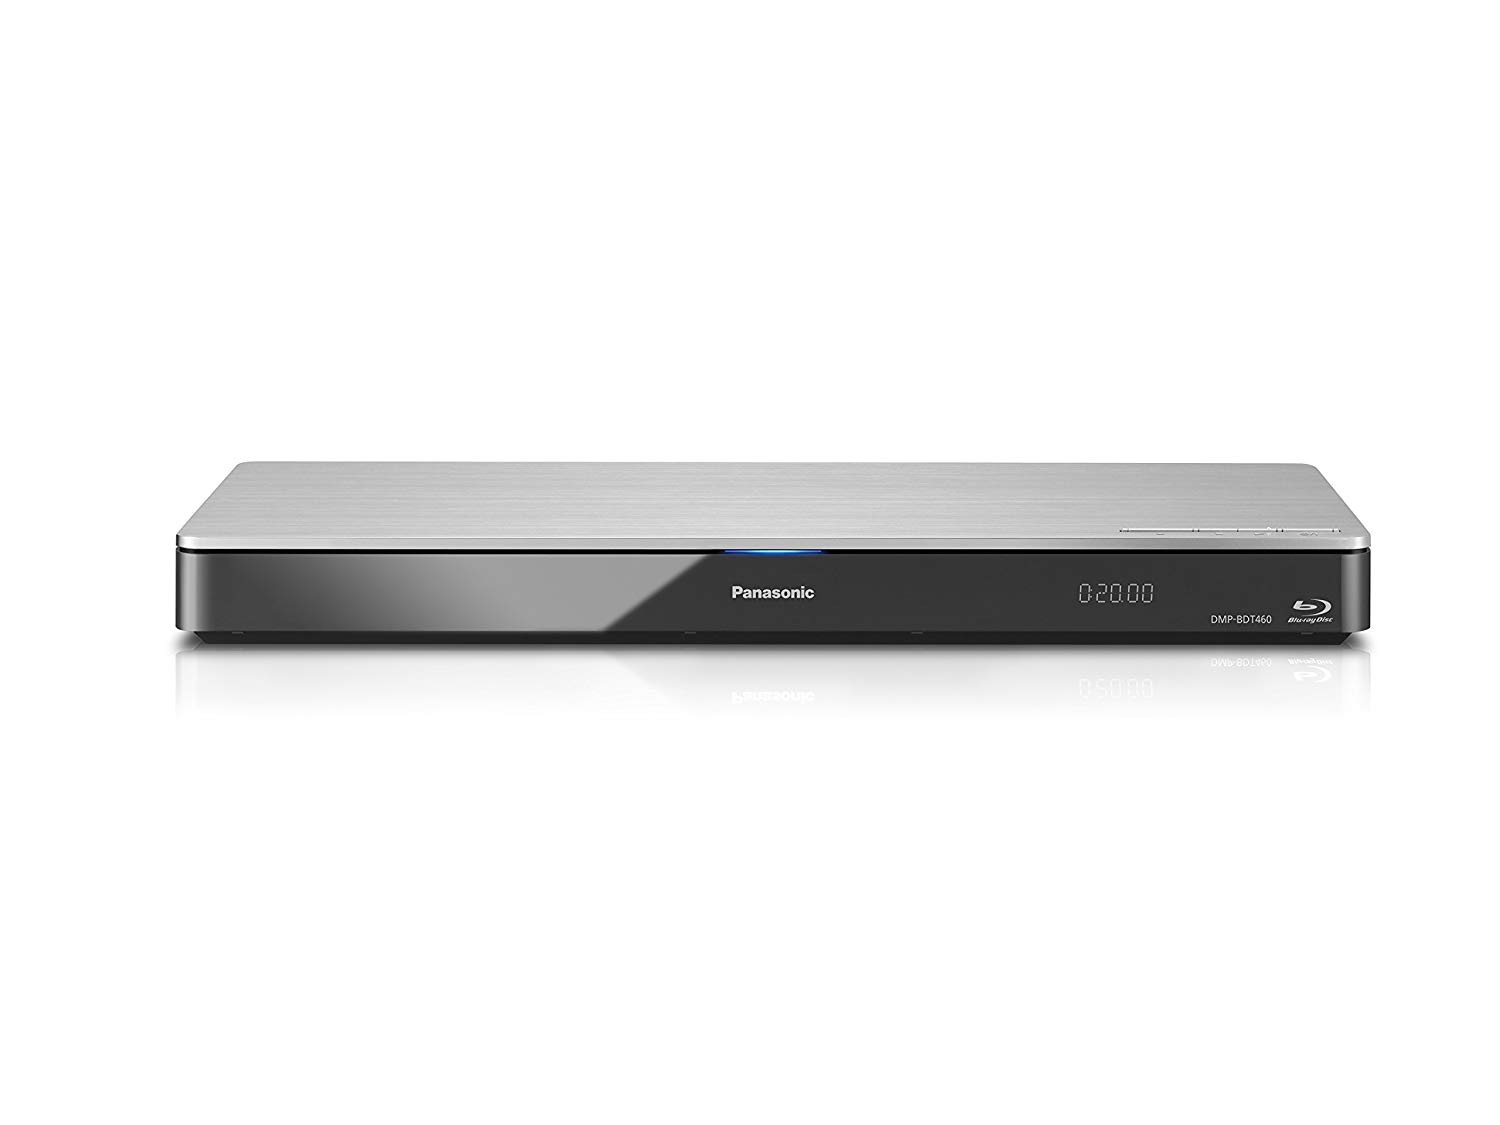 Panasonic 3D Blu-Ray Disc and Streaming Player